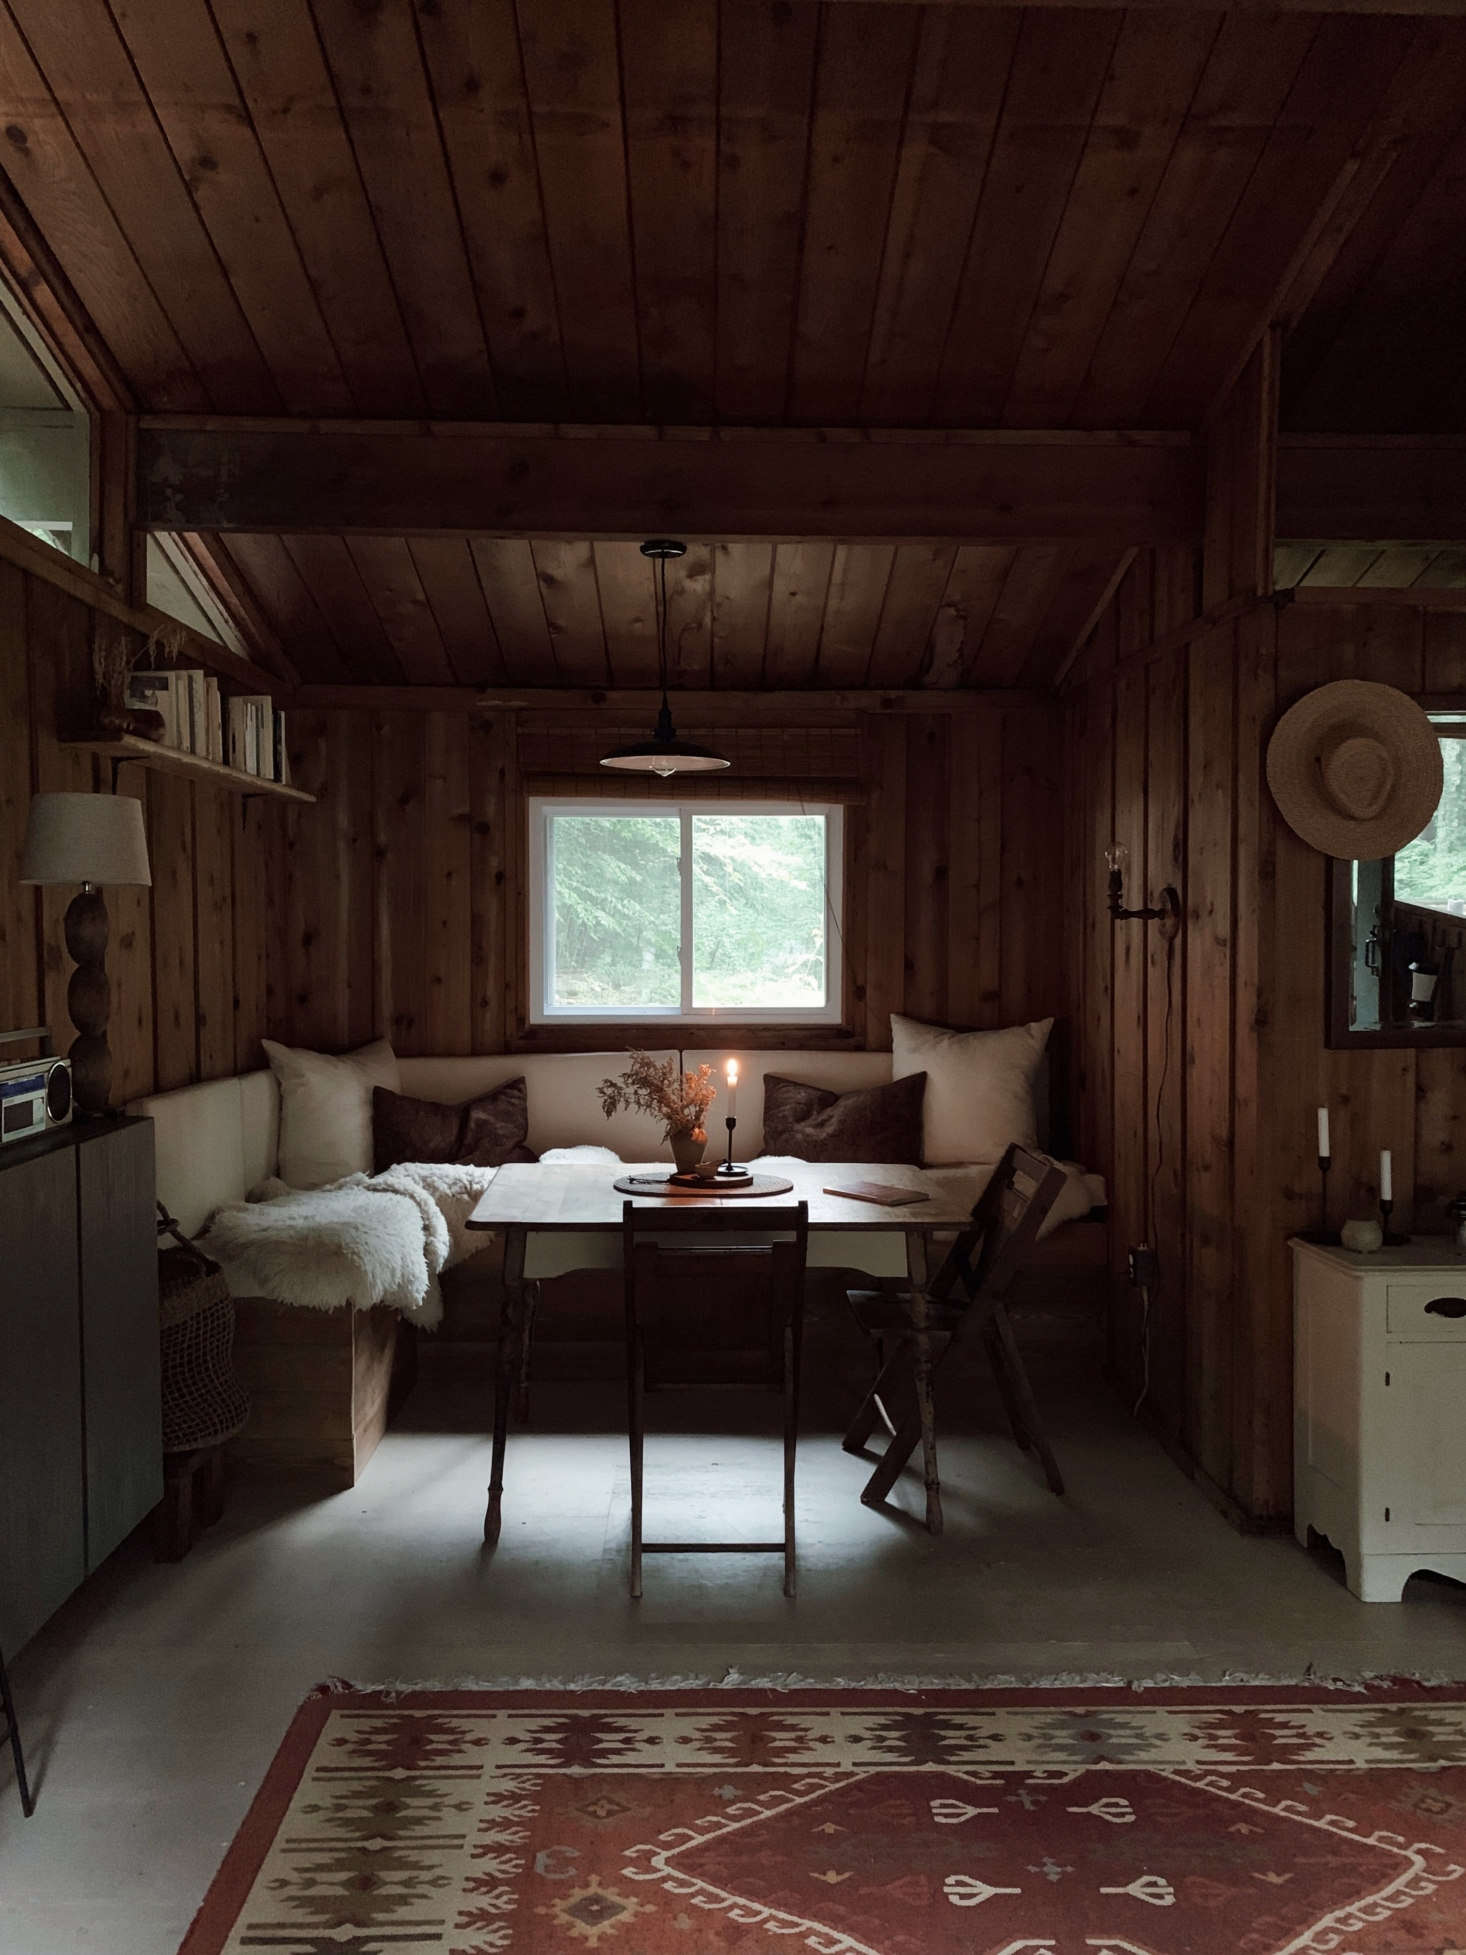 """The dining nook is the couple's proudest DIY. """"We designed it ourselves after watching a number of different YouTube tutorials,"""" Saunders says. """"The frame is 2x4s and plywood, and I made the removable cushions out of plywood, upholstery foam, and canvas. I covered it in sheepskins to make it extra cozy for us and also for our dog, who loves to nap there."""""""